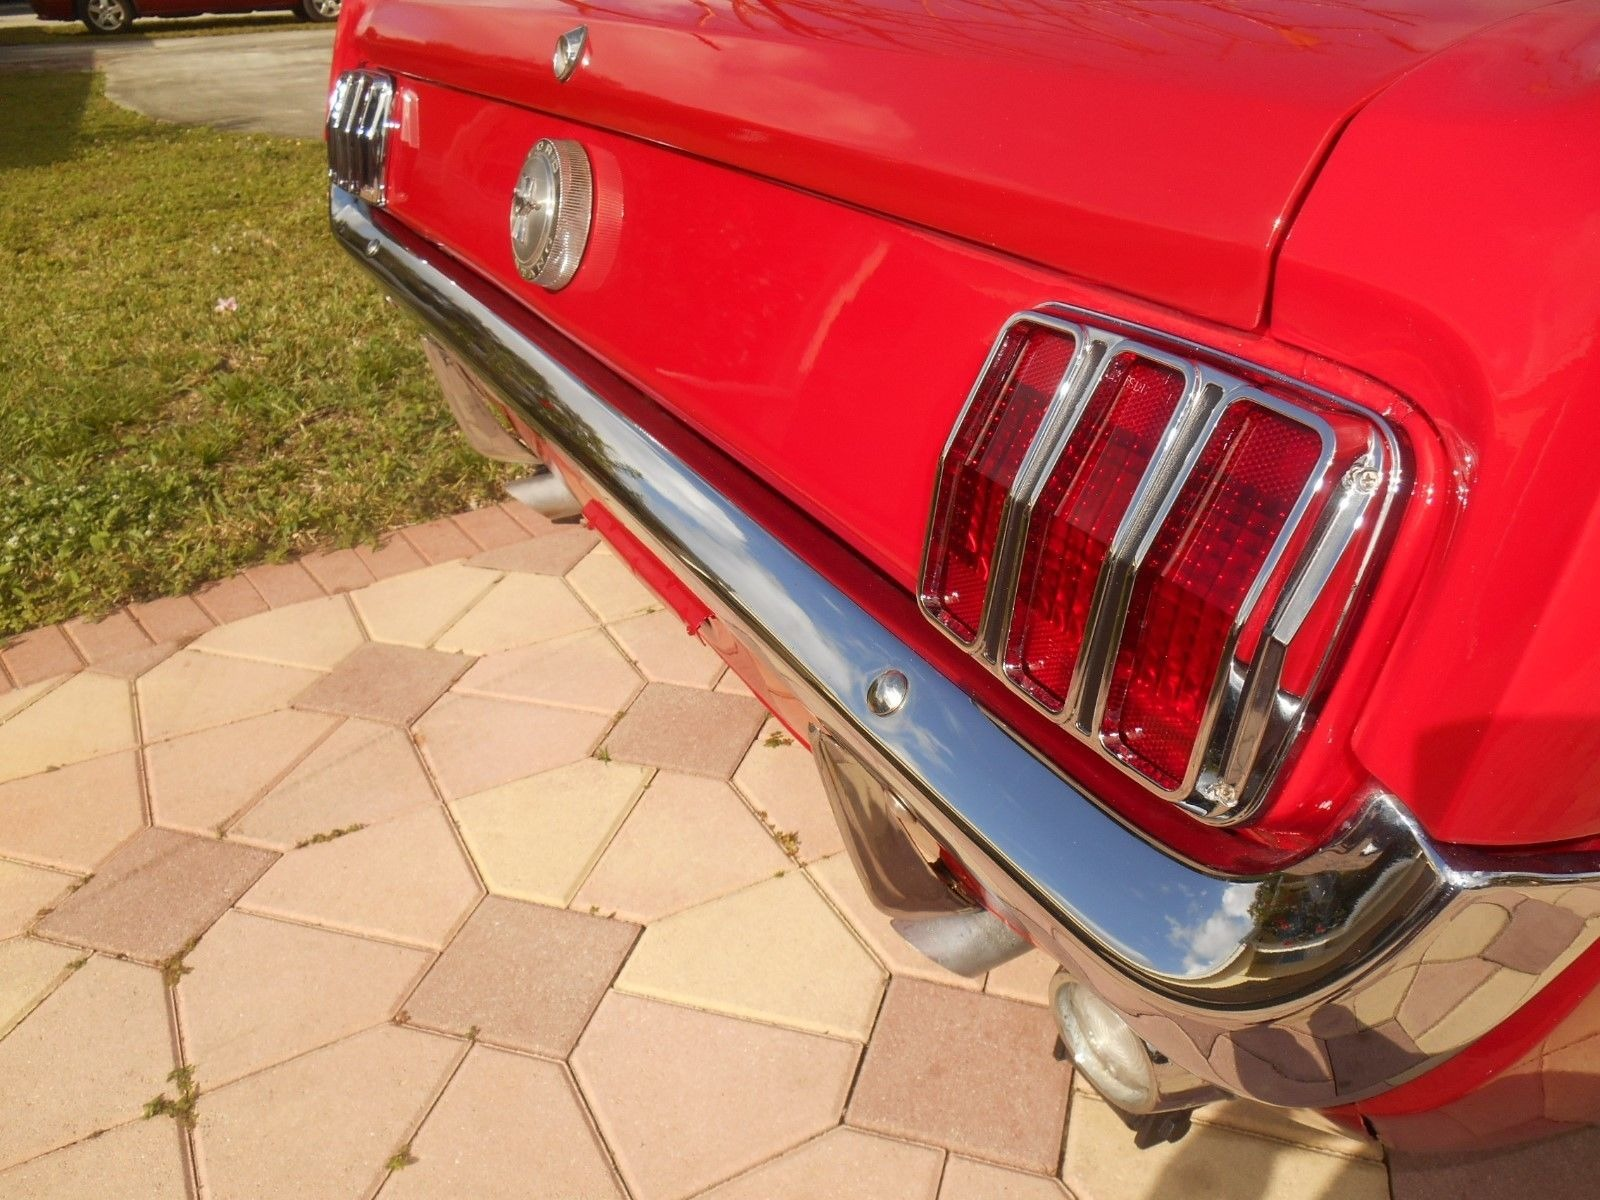 1966 mustang 289 engine telephone wall socket wiring diagram australia ford deluxe candy apple red with manual used trans